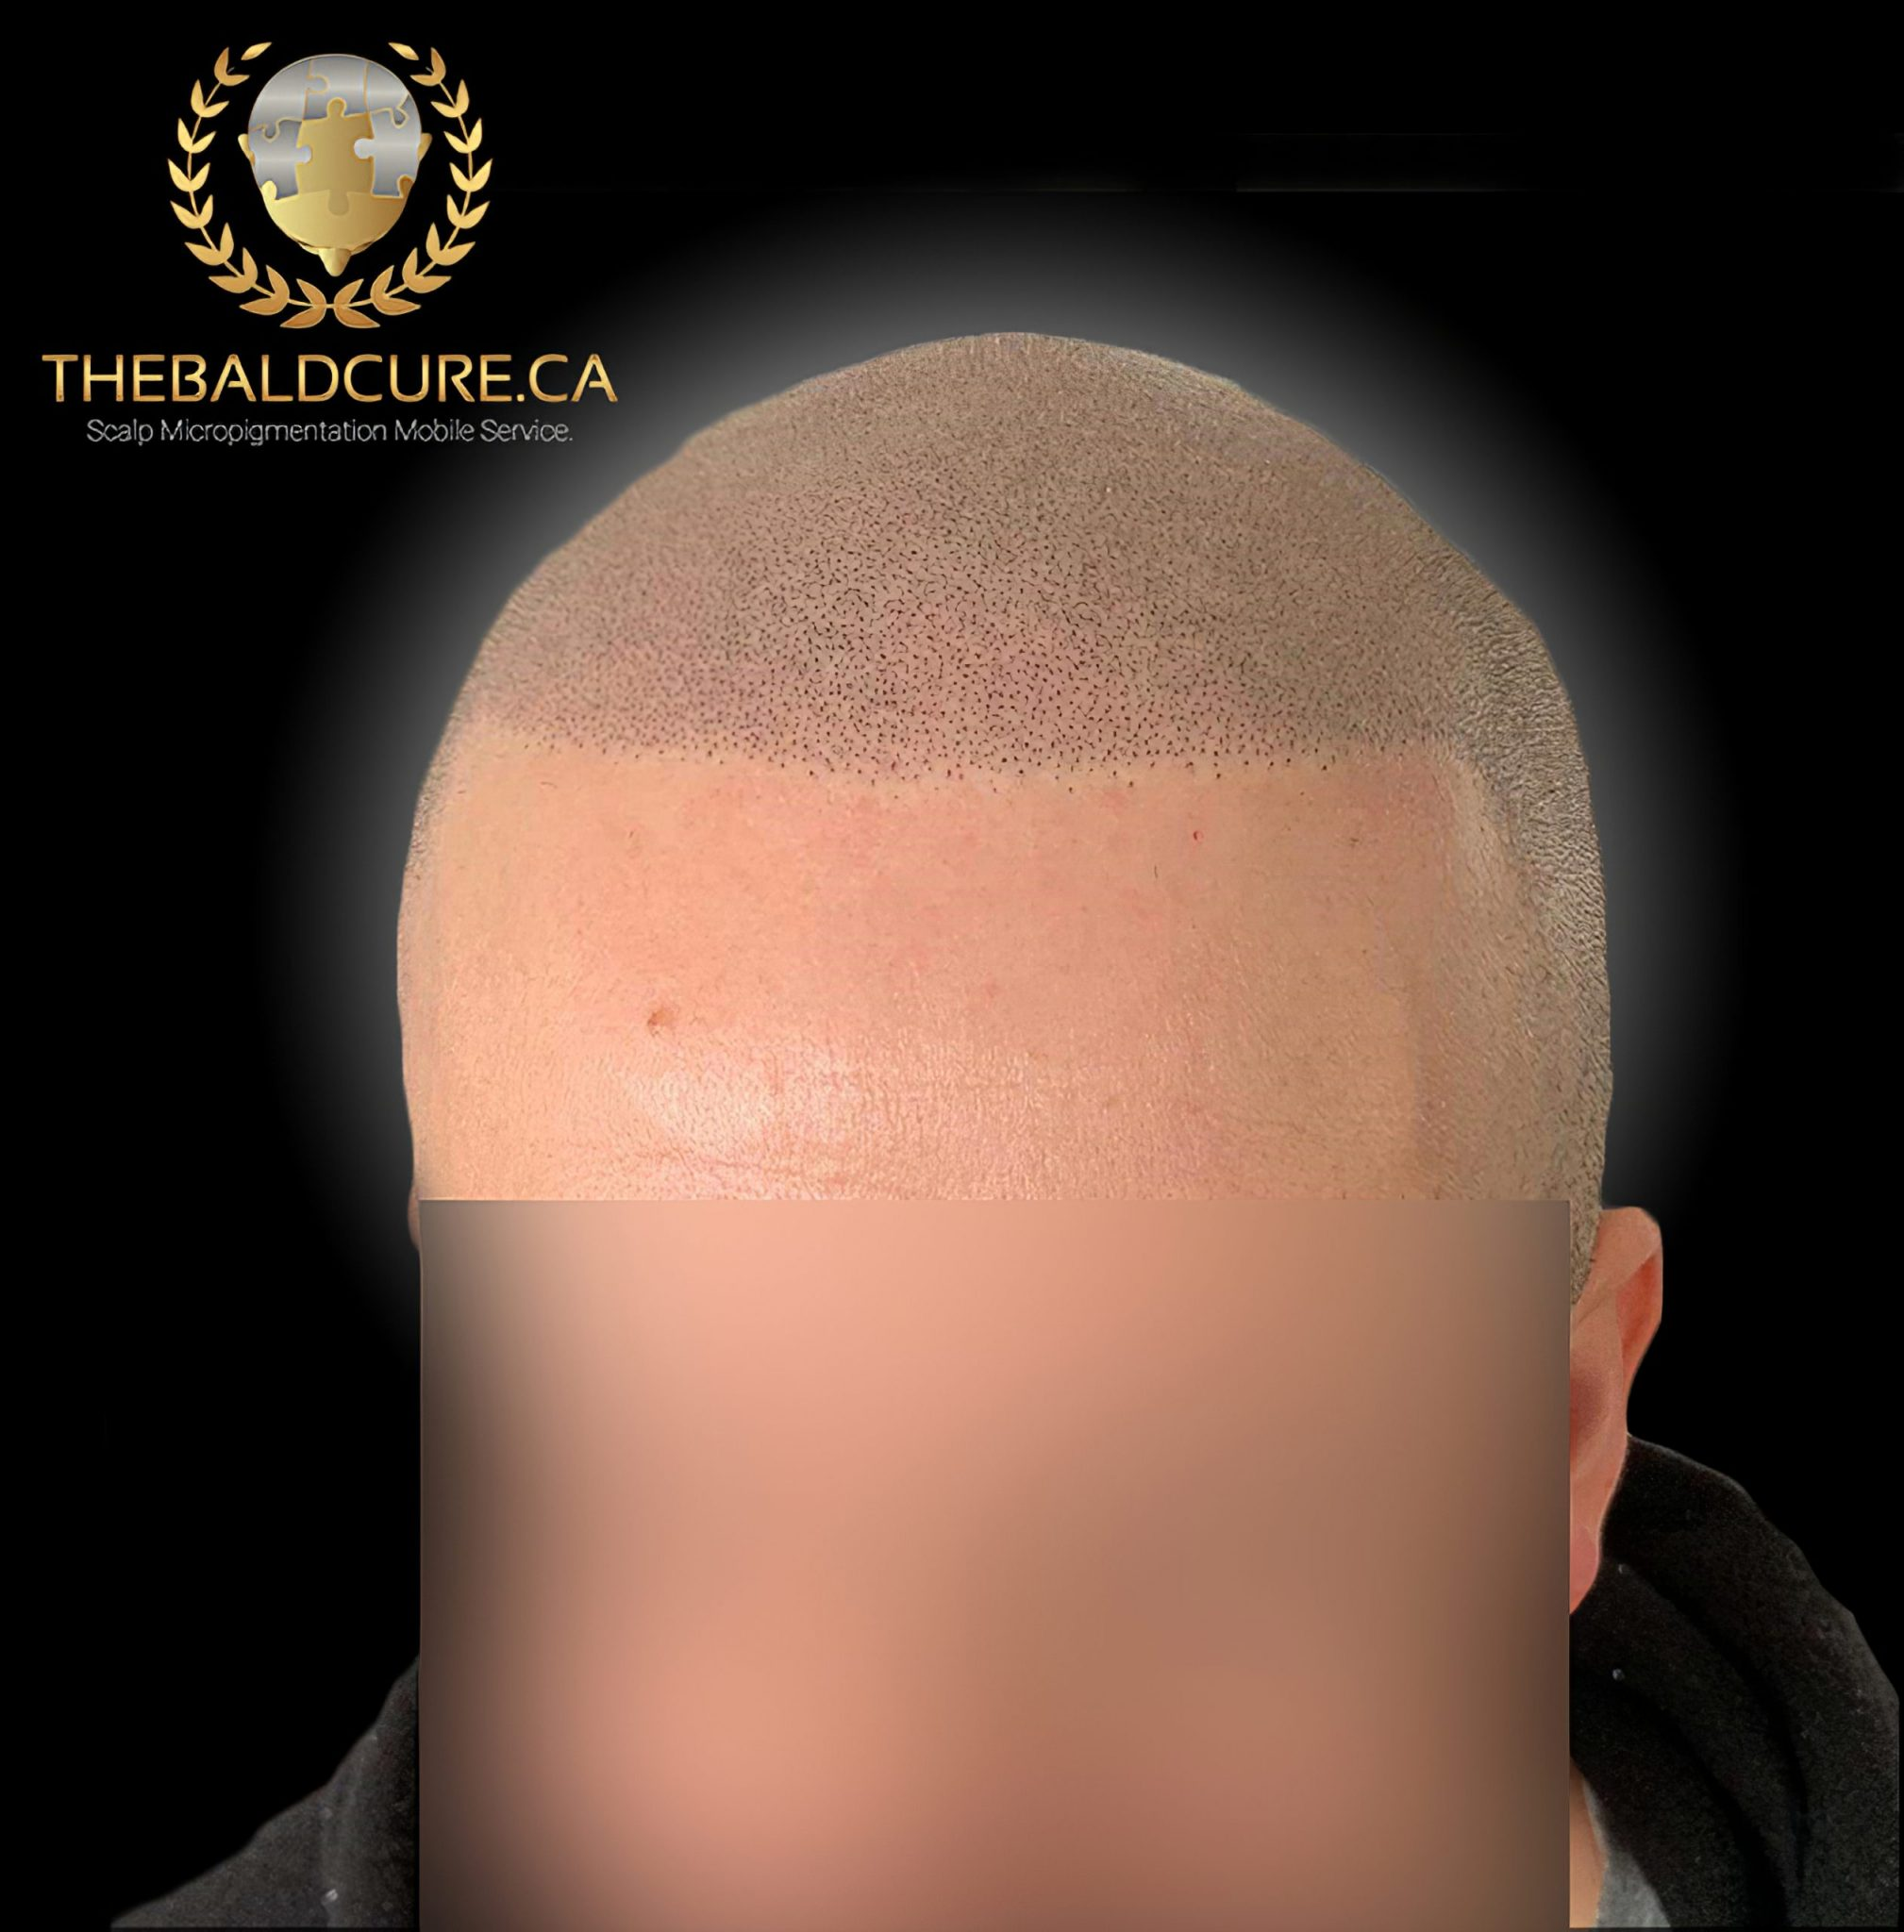 The Bald Cure Mobile Service In The Comfort Of Your Home We Beat Any Price 8-high-Resolution-scaled Pictures. Explore Our Photo Gallery